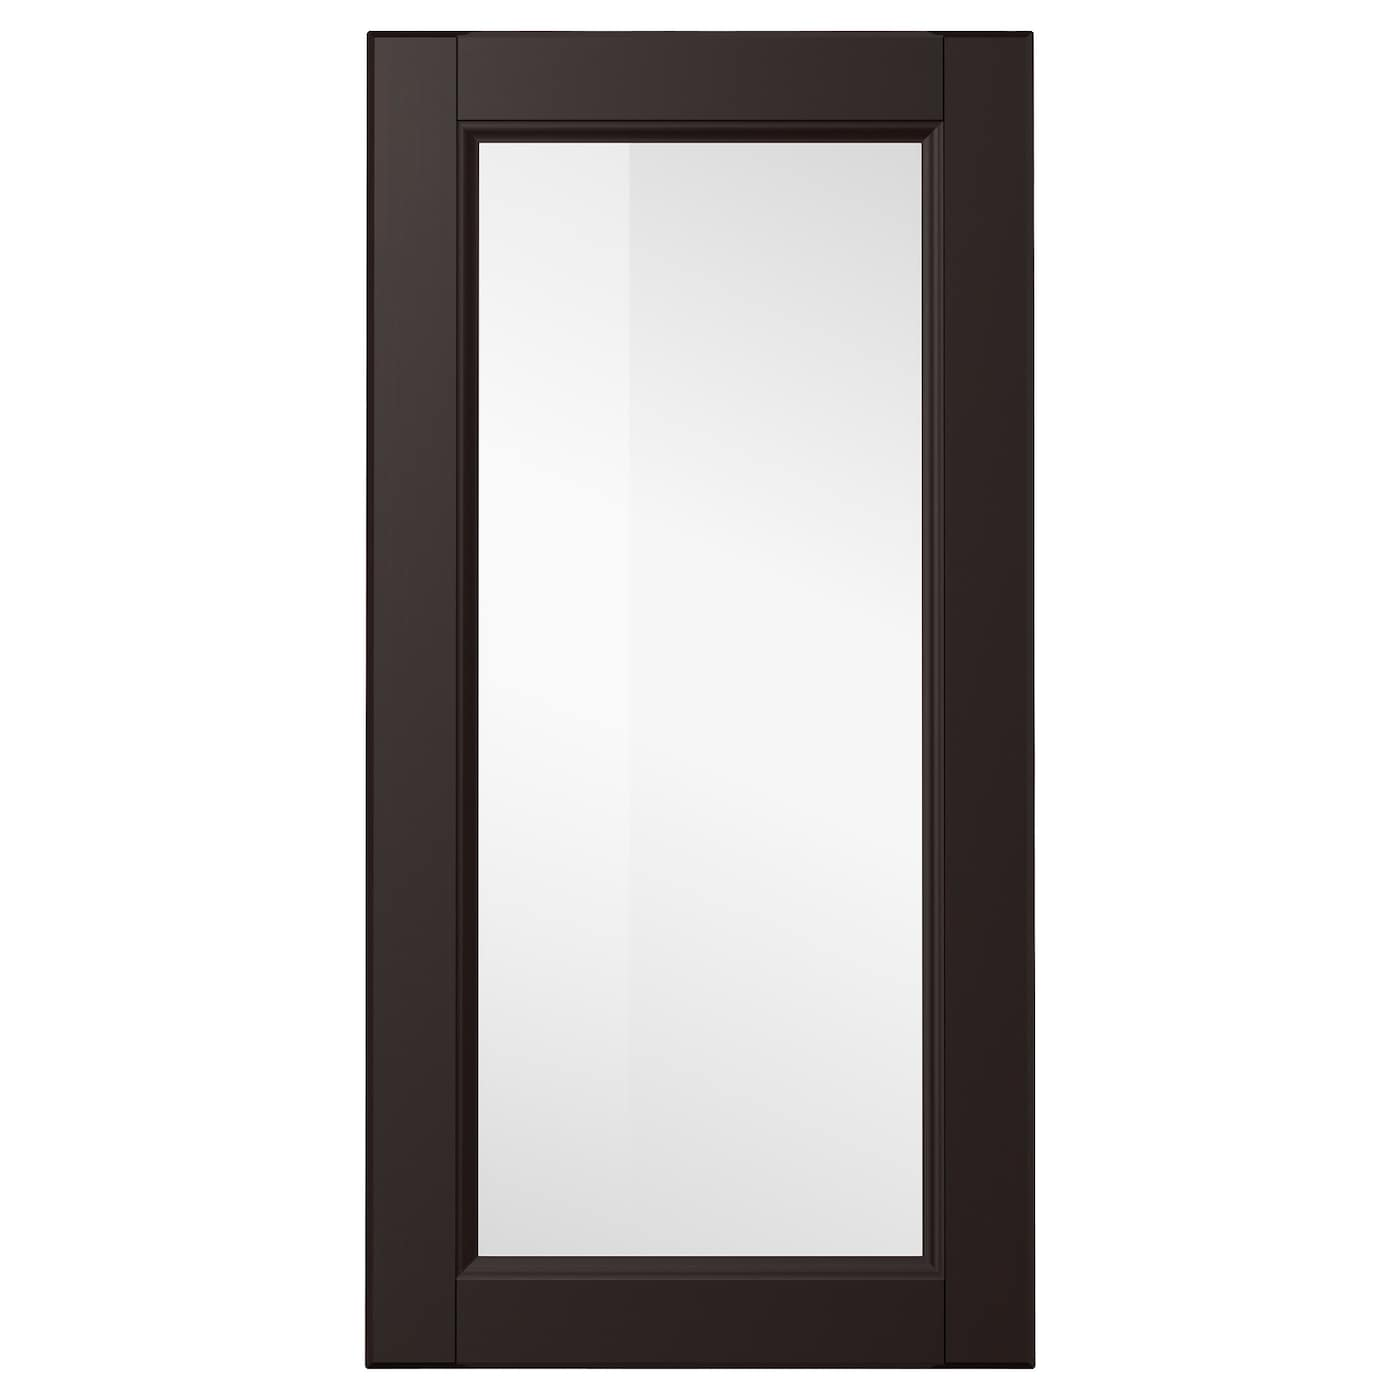 Laxarby glass door black brown 40x80 cm ikea for Black cabinet with doors